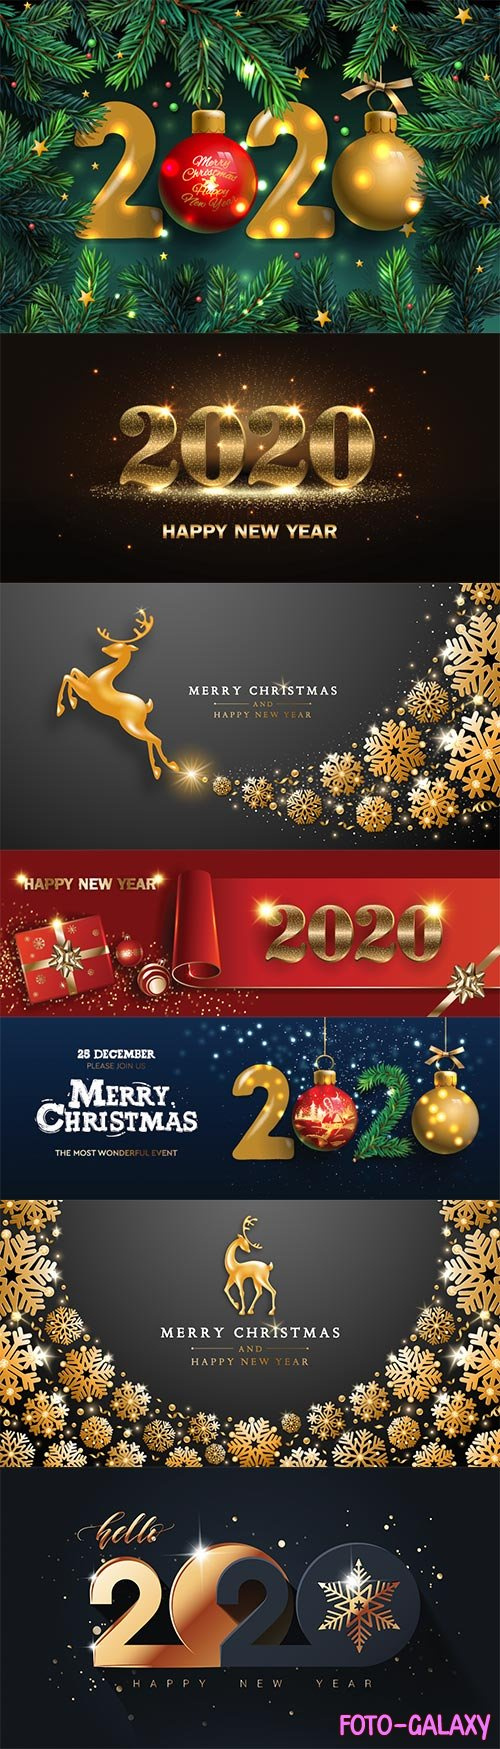 Happy New Year 2020 template, holiday vector